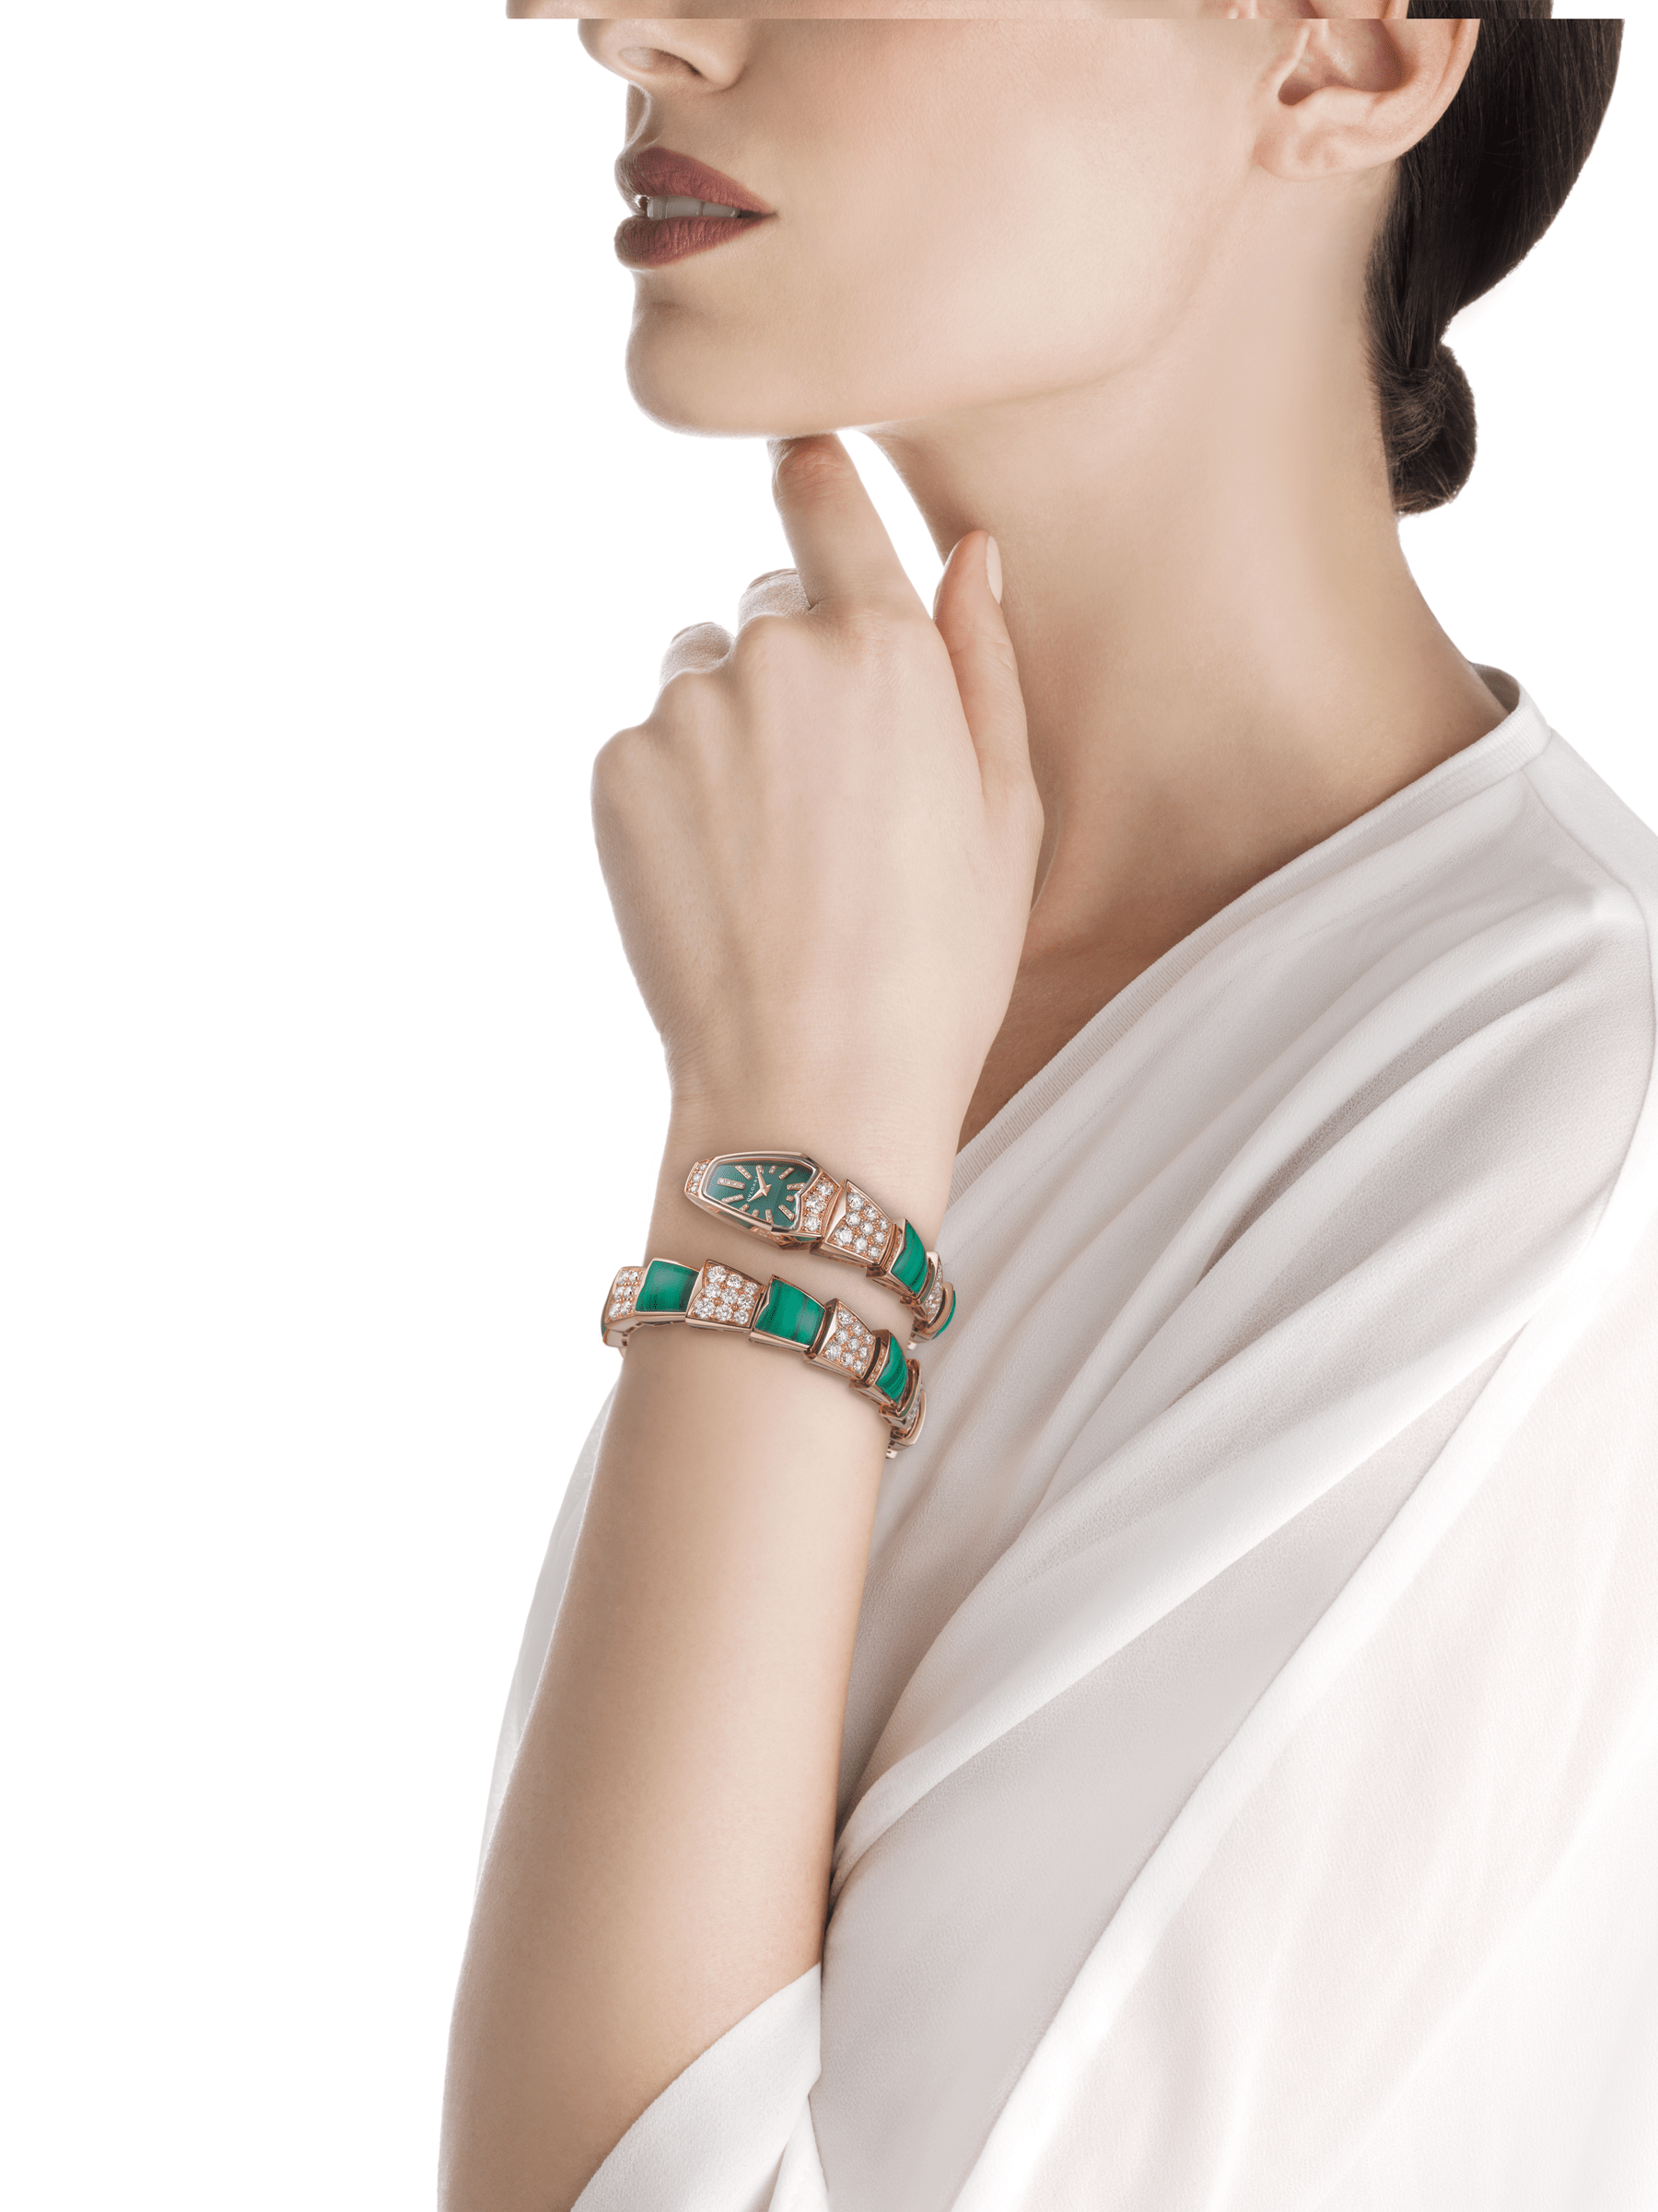 Serpenti Jewellery Watch with 18 kt rose gold case set with brilliant cut diamonds, green lacquered dial, diamond indexes and 18 kt rose gold single spiral bracelet set with brilliant cut diamonds and malachite elements. 102678 image 3